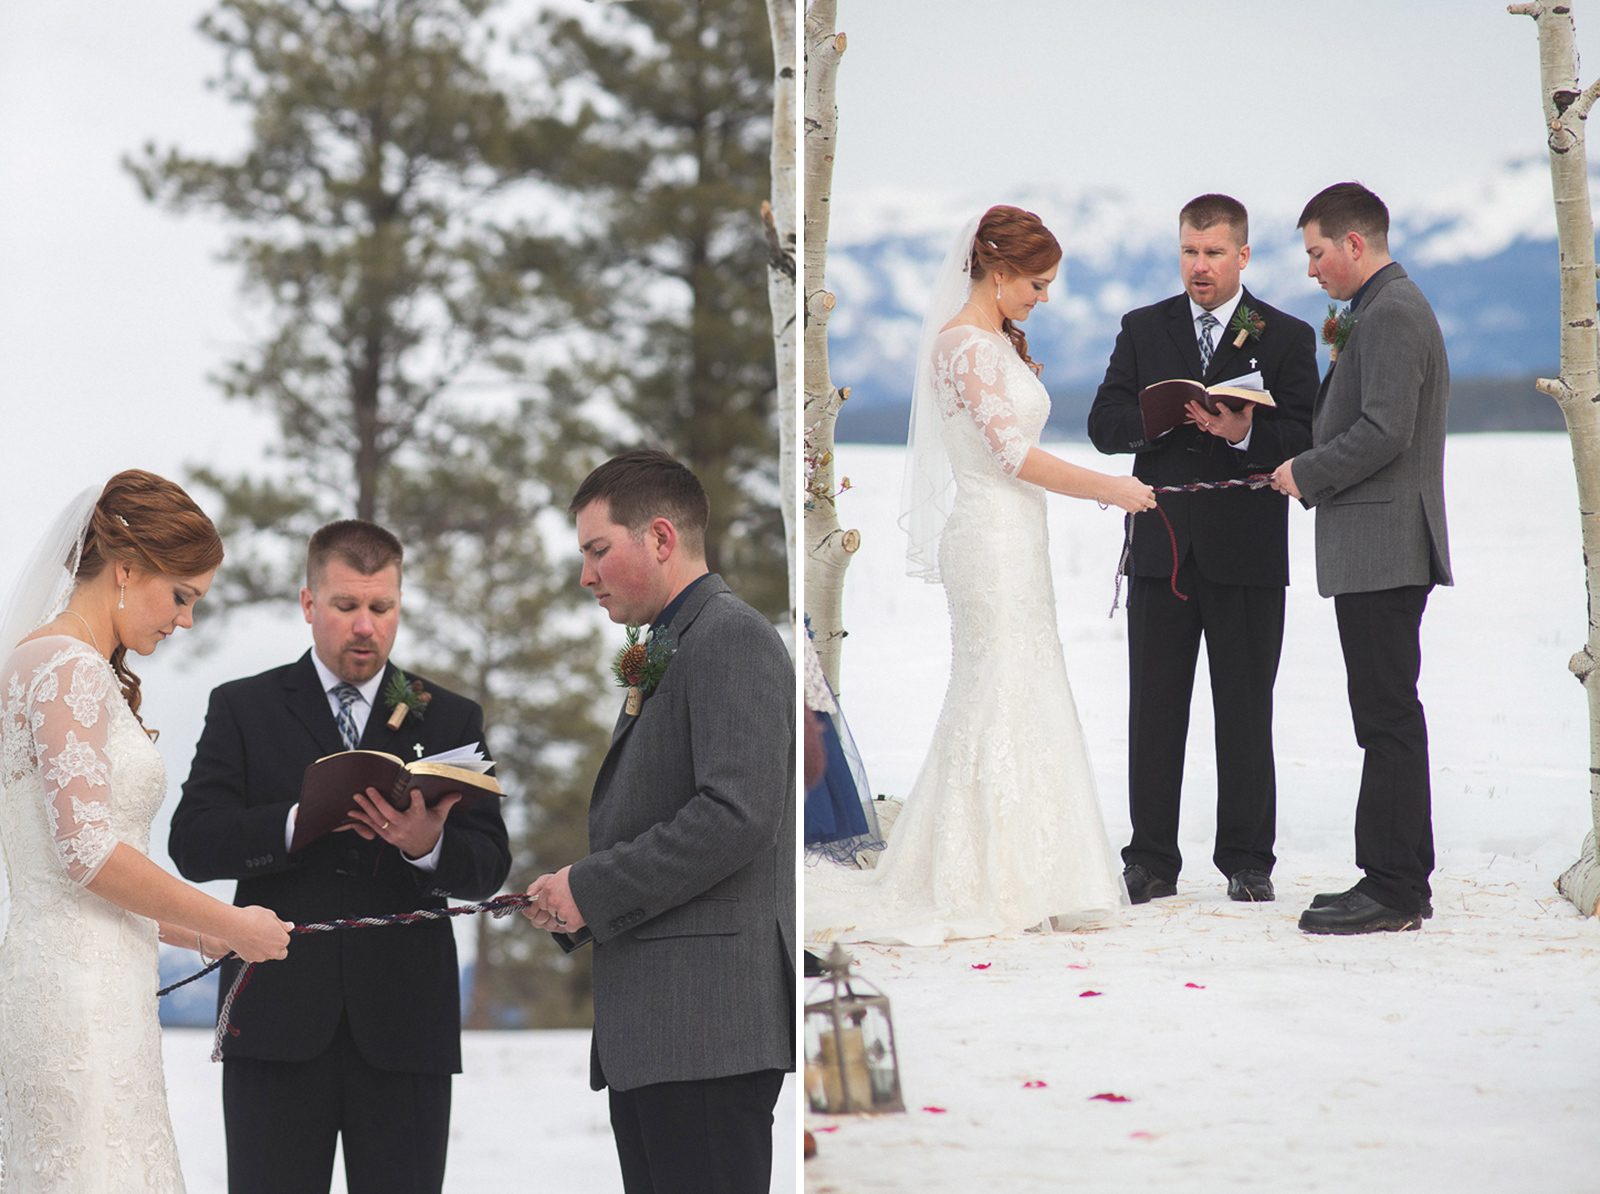 123-wedding-ceremony-in-pagosa-springs-wedding-photographer-snow-winter-wedding